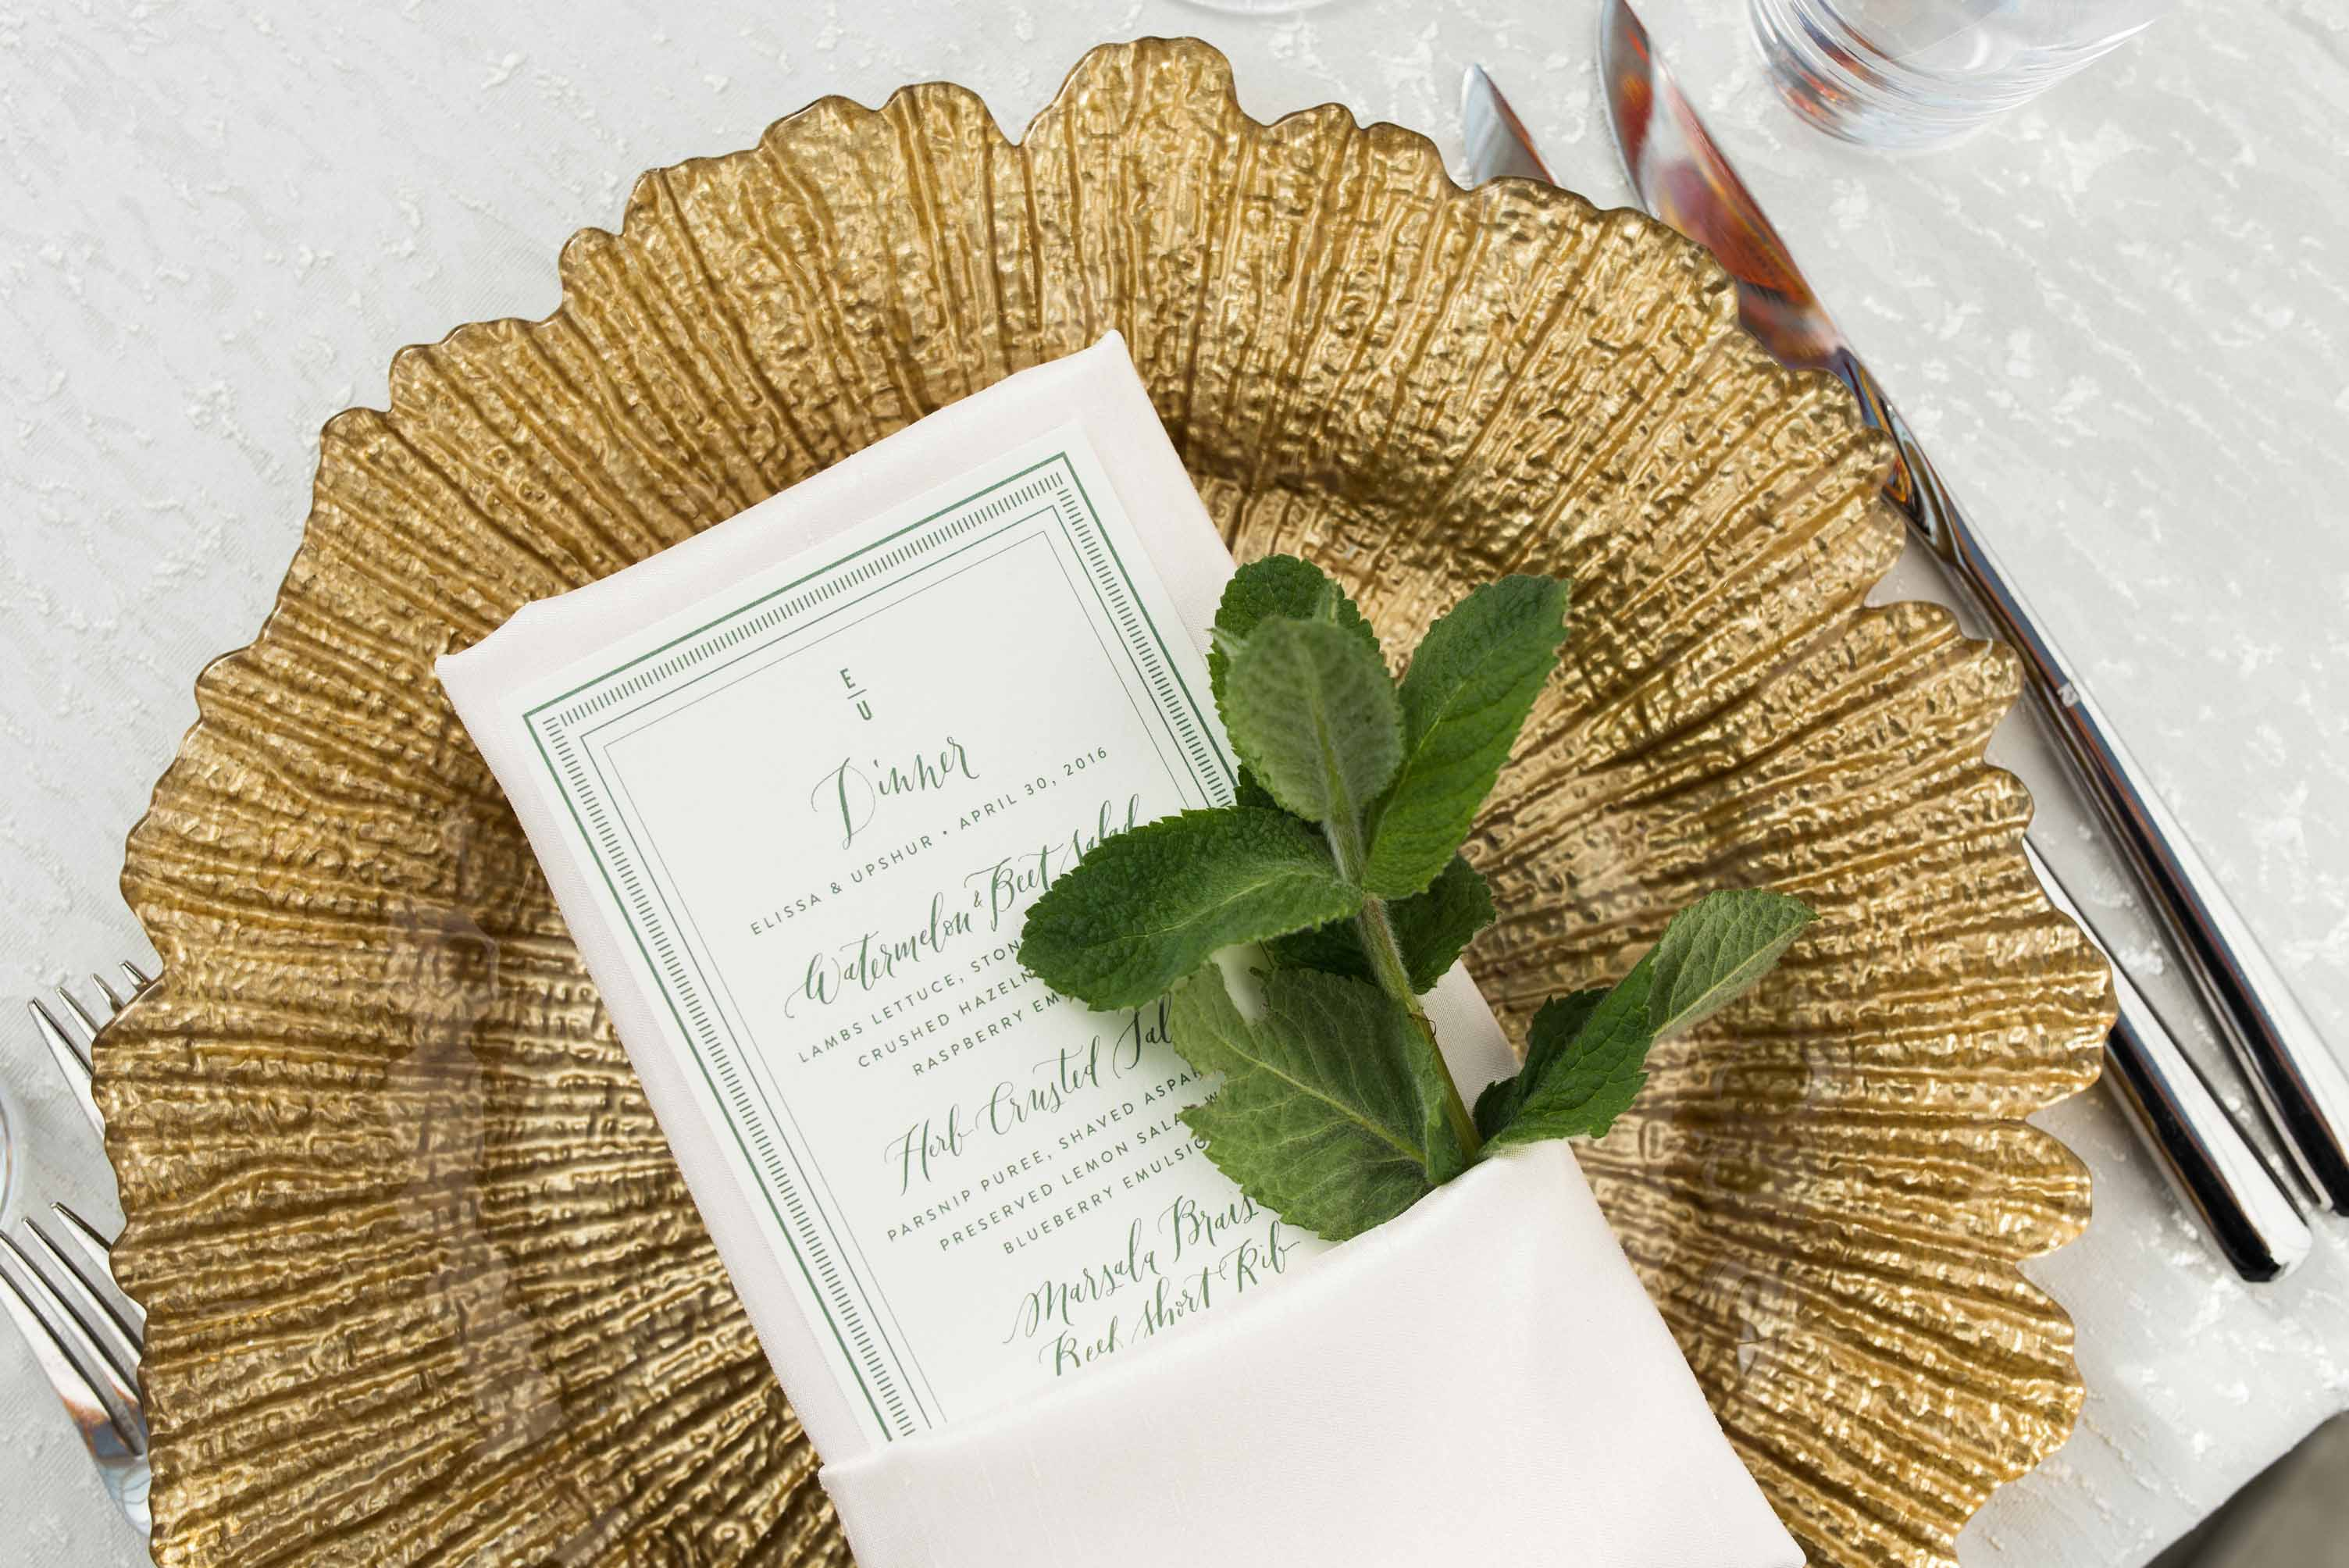 Gold charger plate, with ivory napkin, and a sprig of herbs